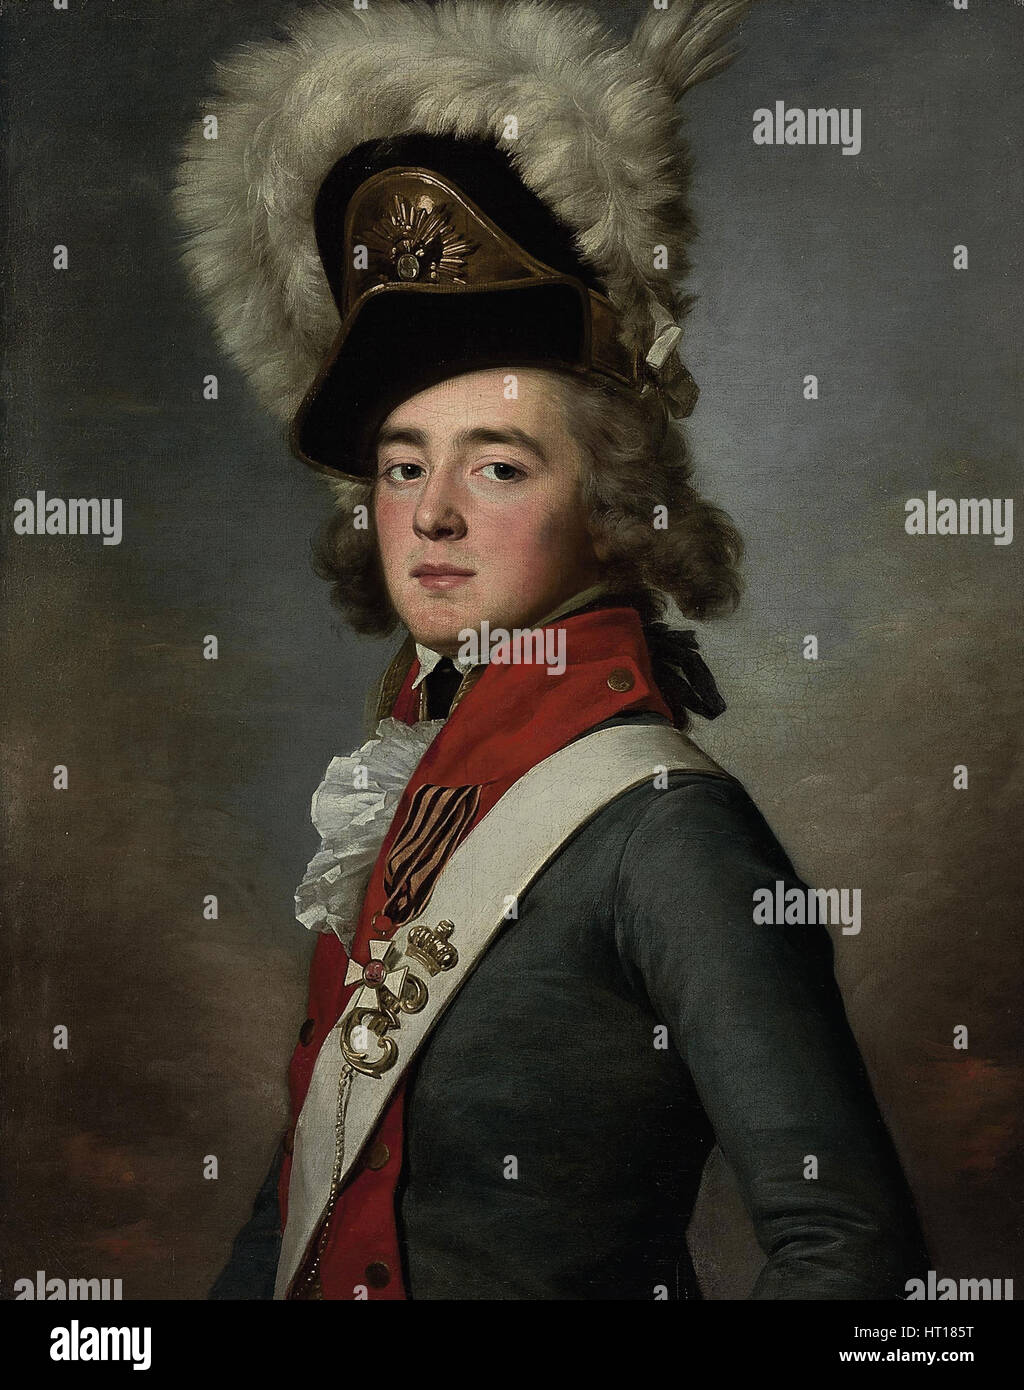 Portrait of Count Valerian Aleksandrovich Zubov (1771-1804), 1791-1792. Artist: Voille, Jean Louis (1744-after 1803) - Stock Image